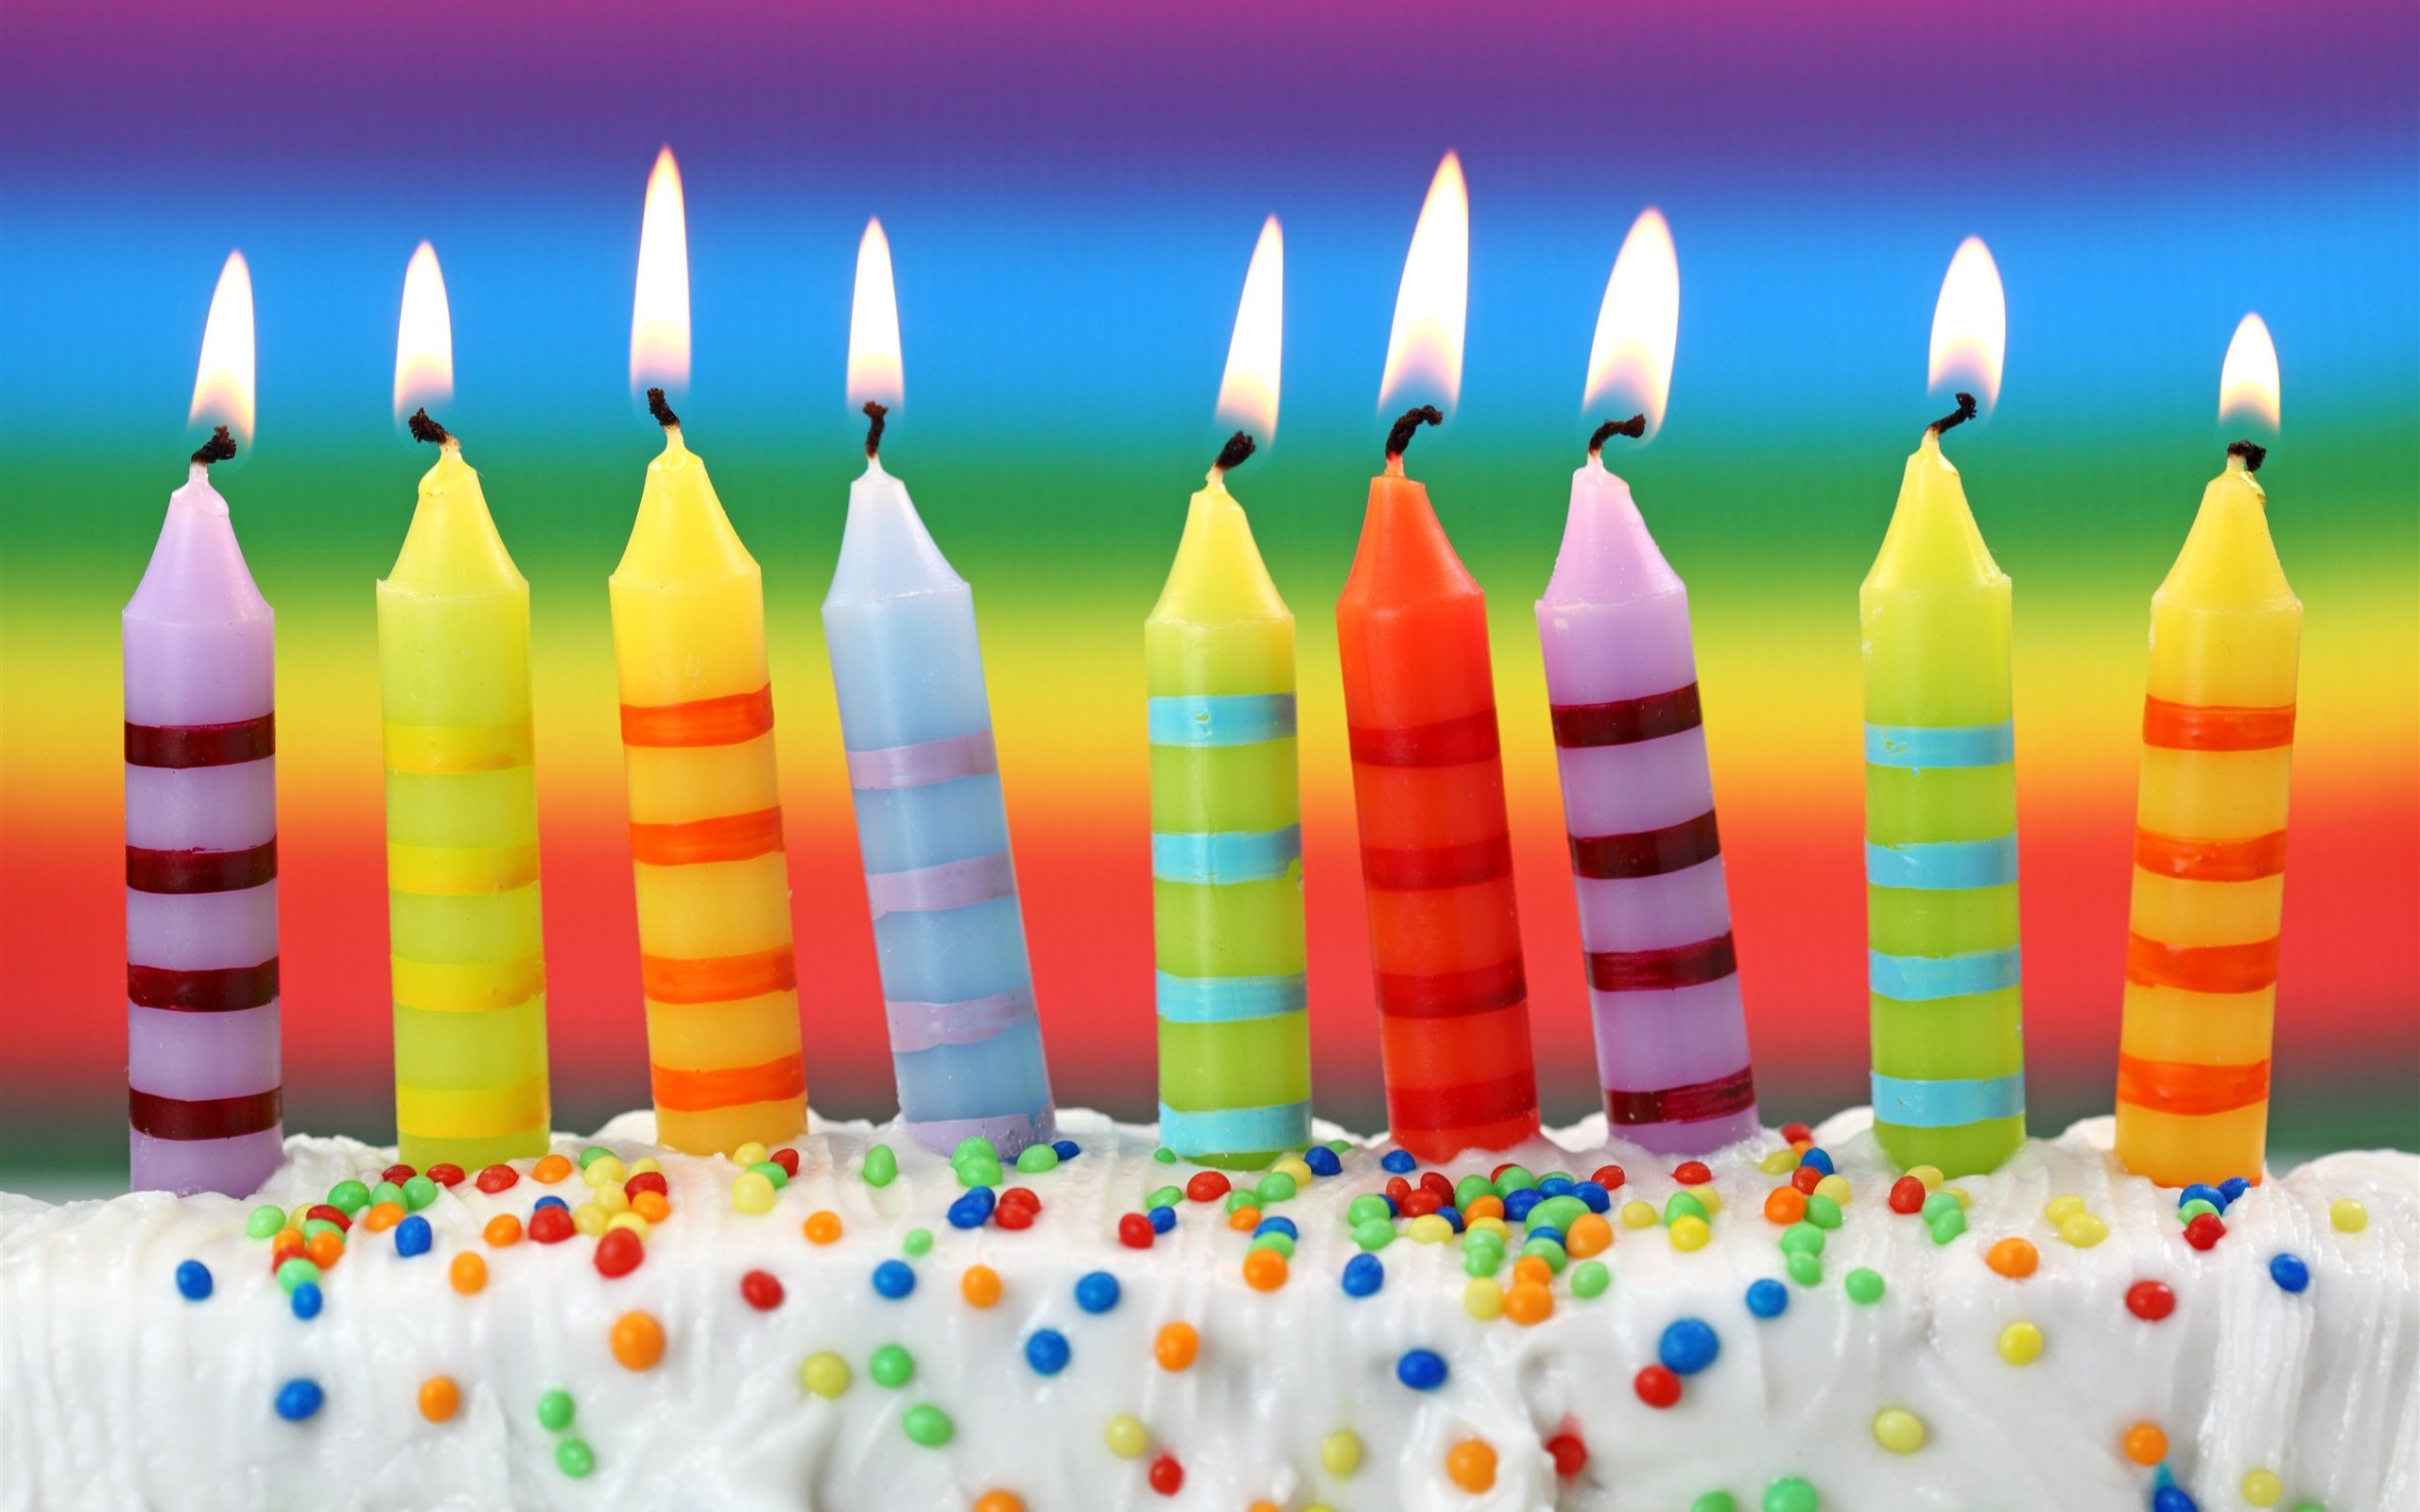 birthday candles wallpaper ; happy-birthday-candles-and-cake-wallpaper-34471312